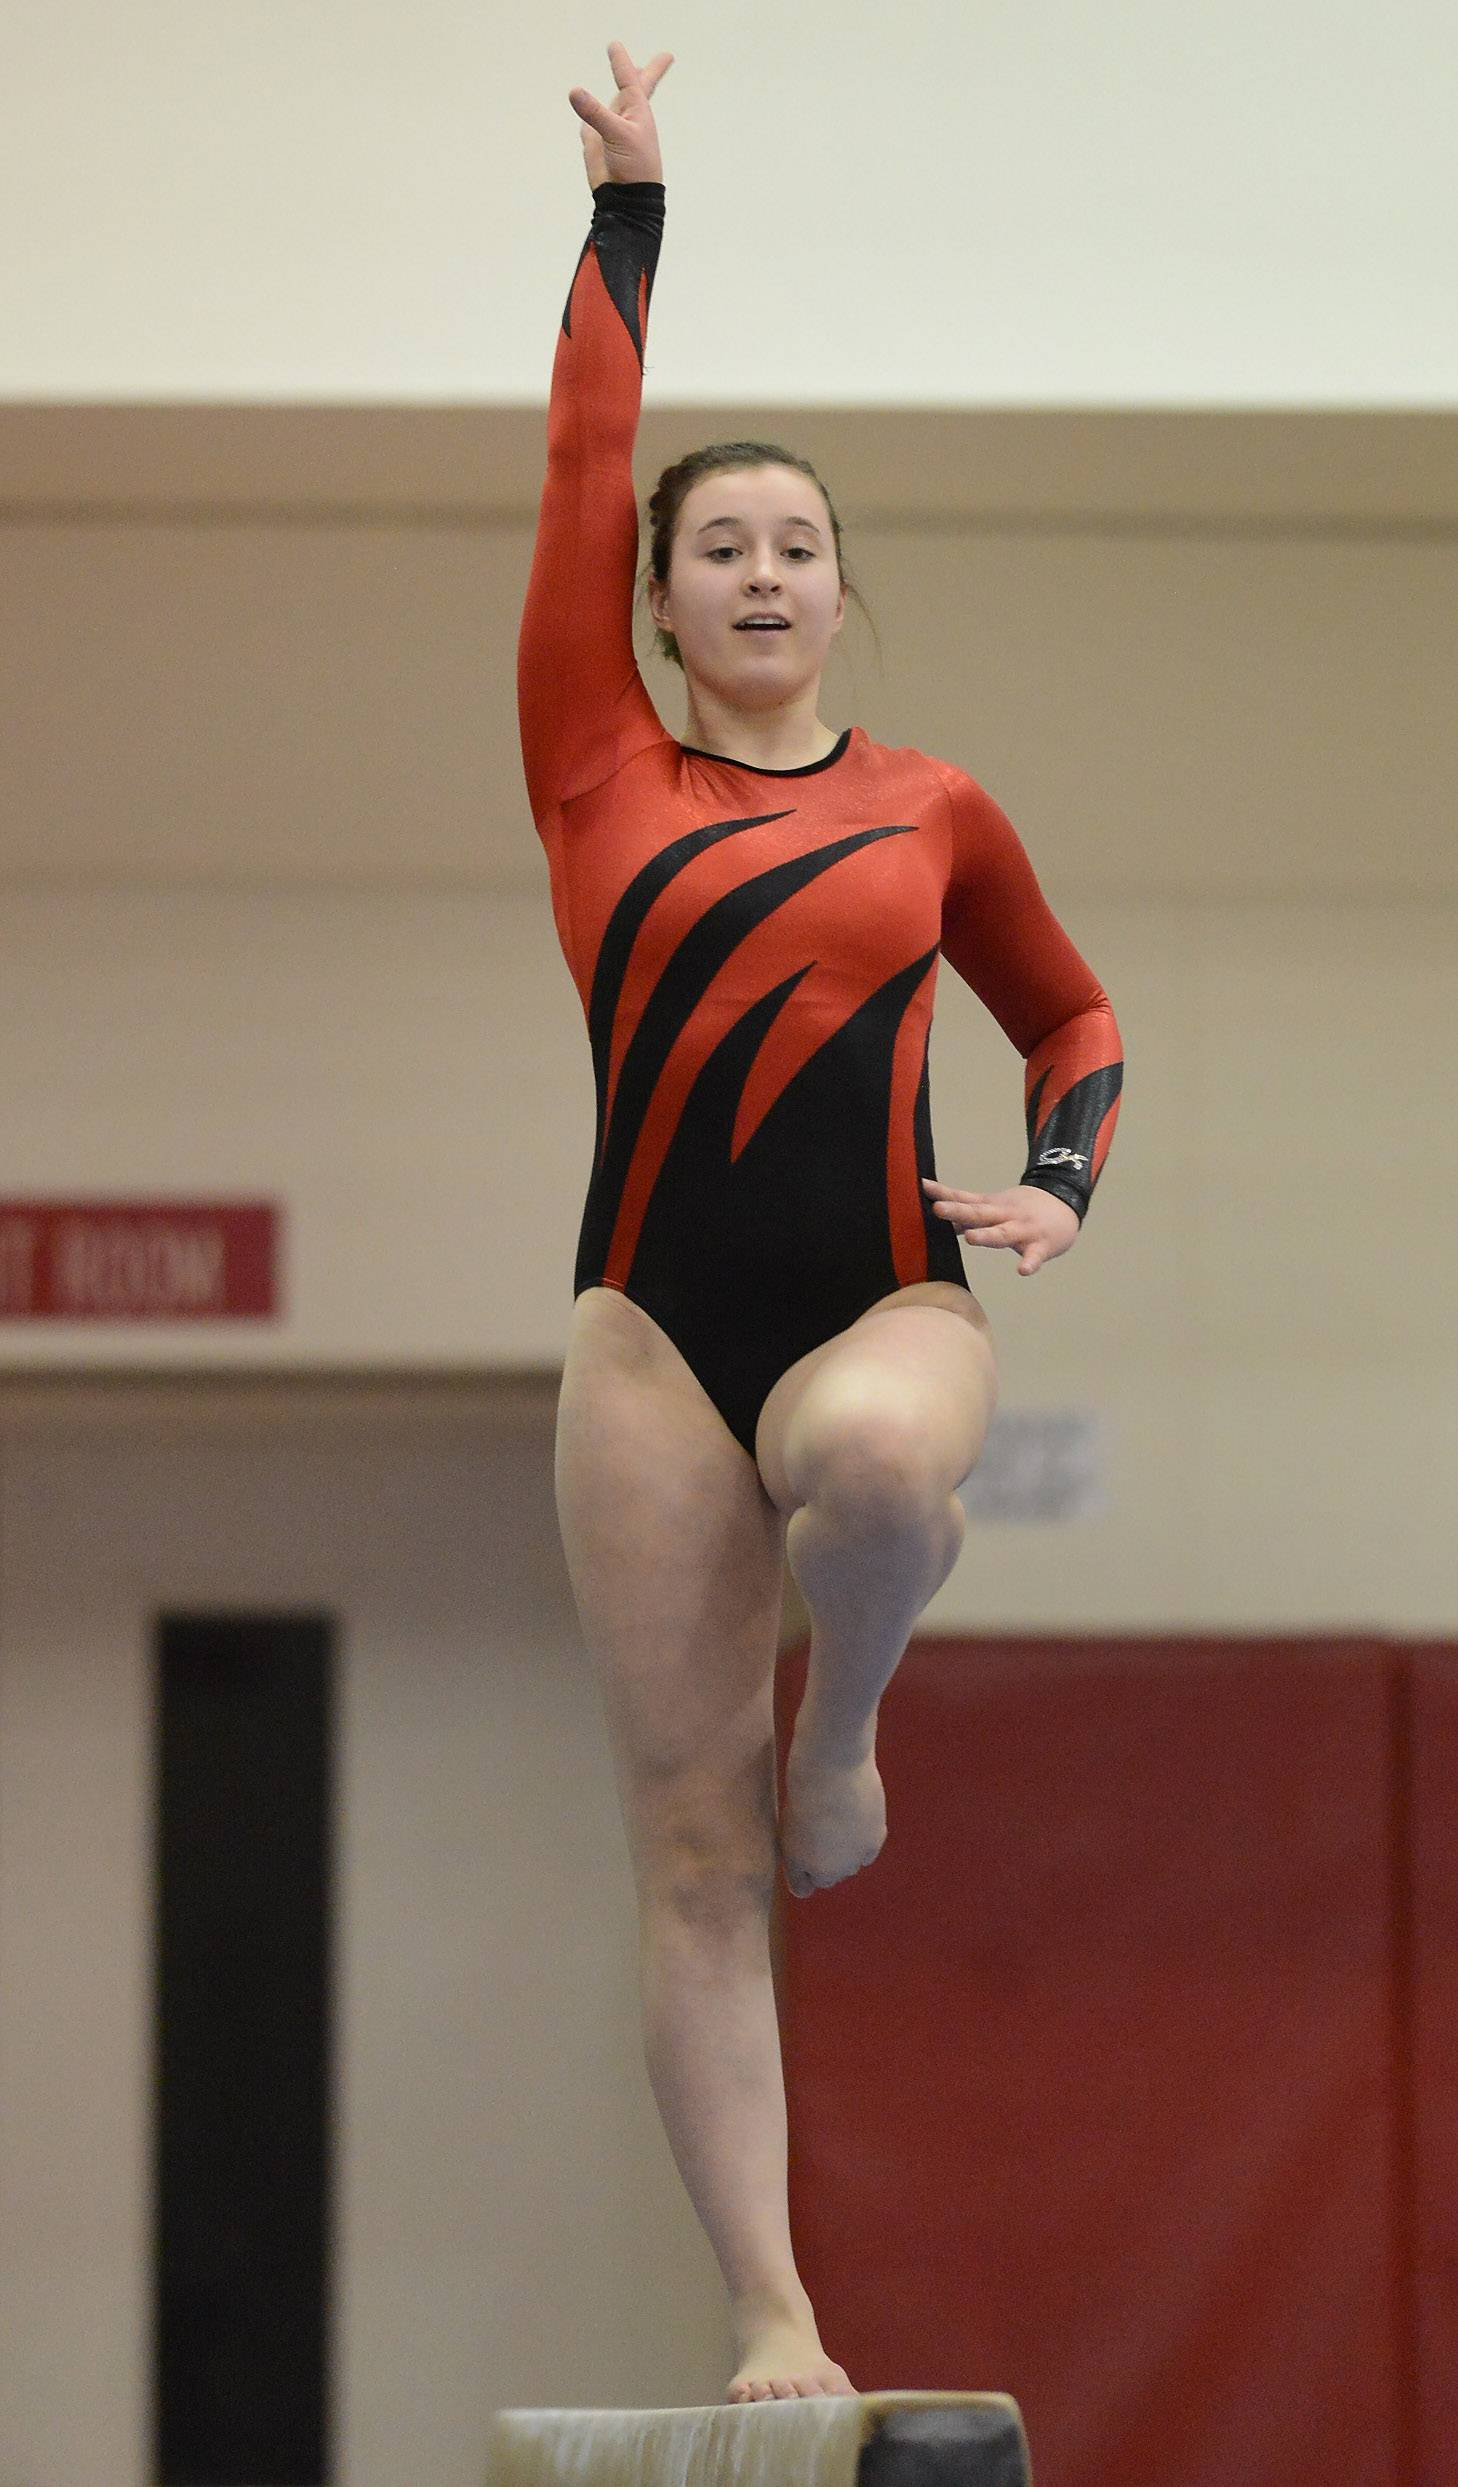 Jill Schuberth of Naperville Central finishing fifth on the balance beam during State Girls Gymnastics Saturday at Palatine High School.